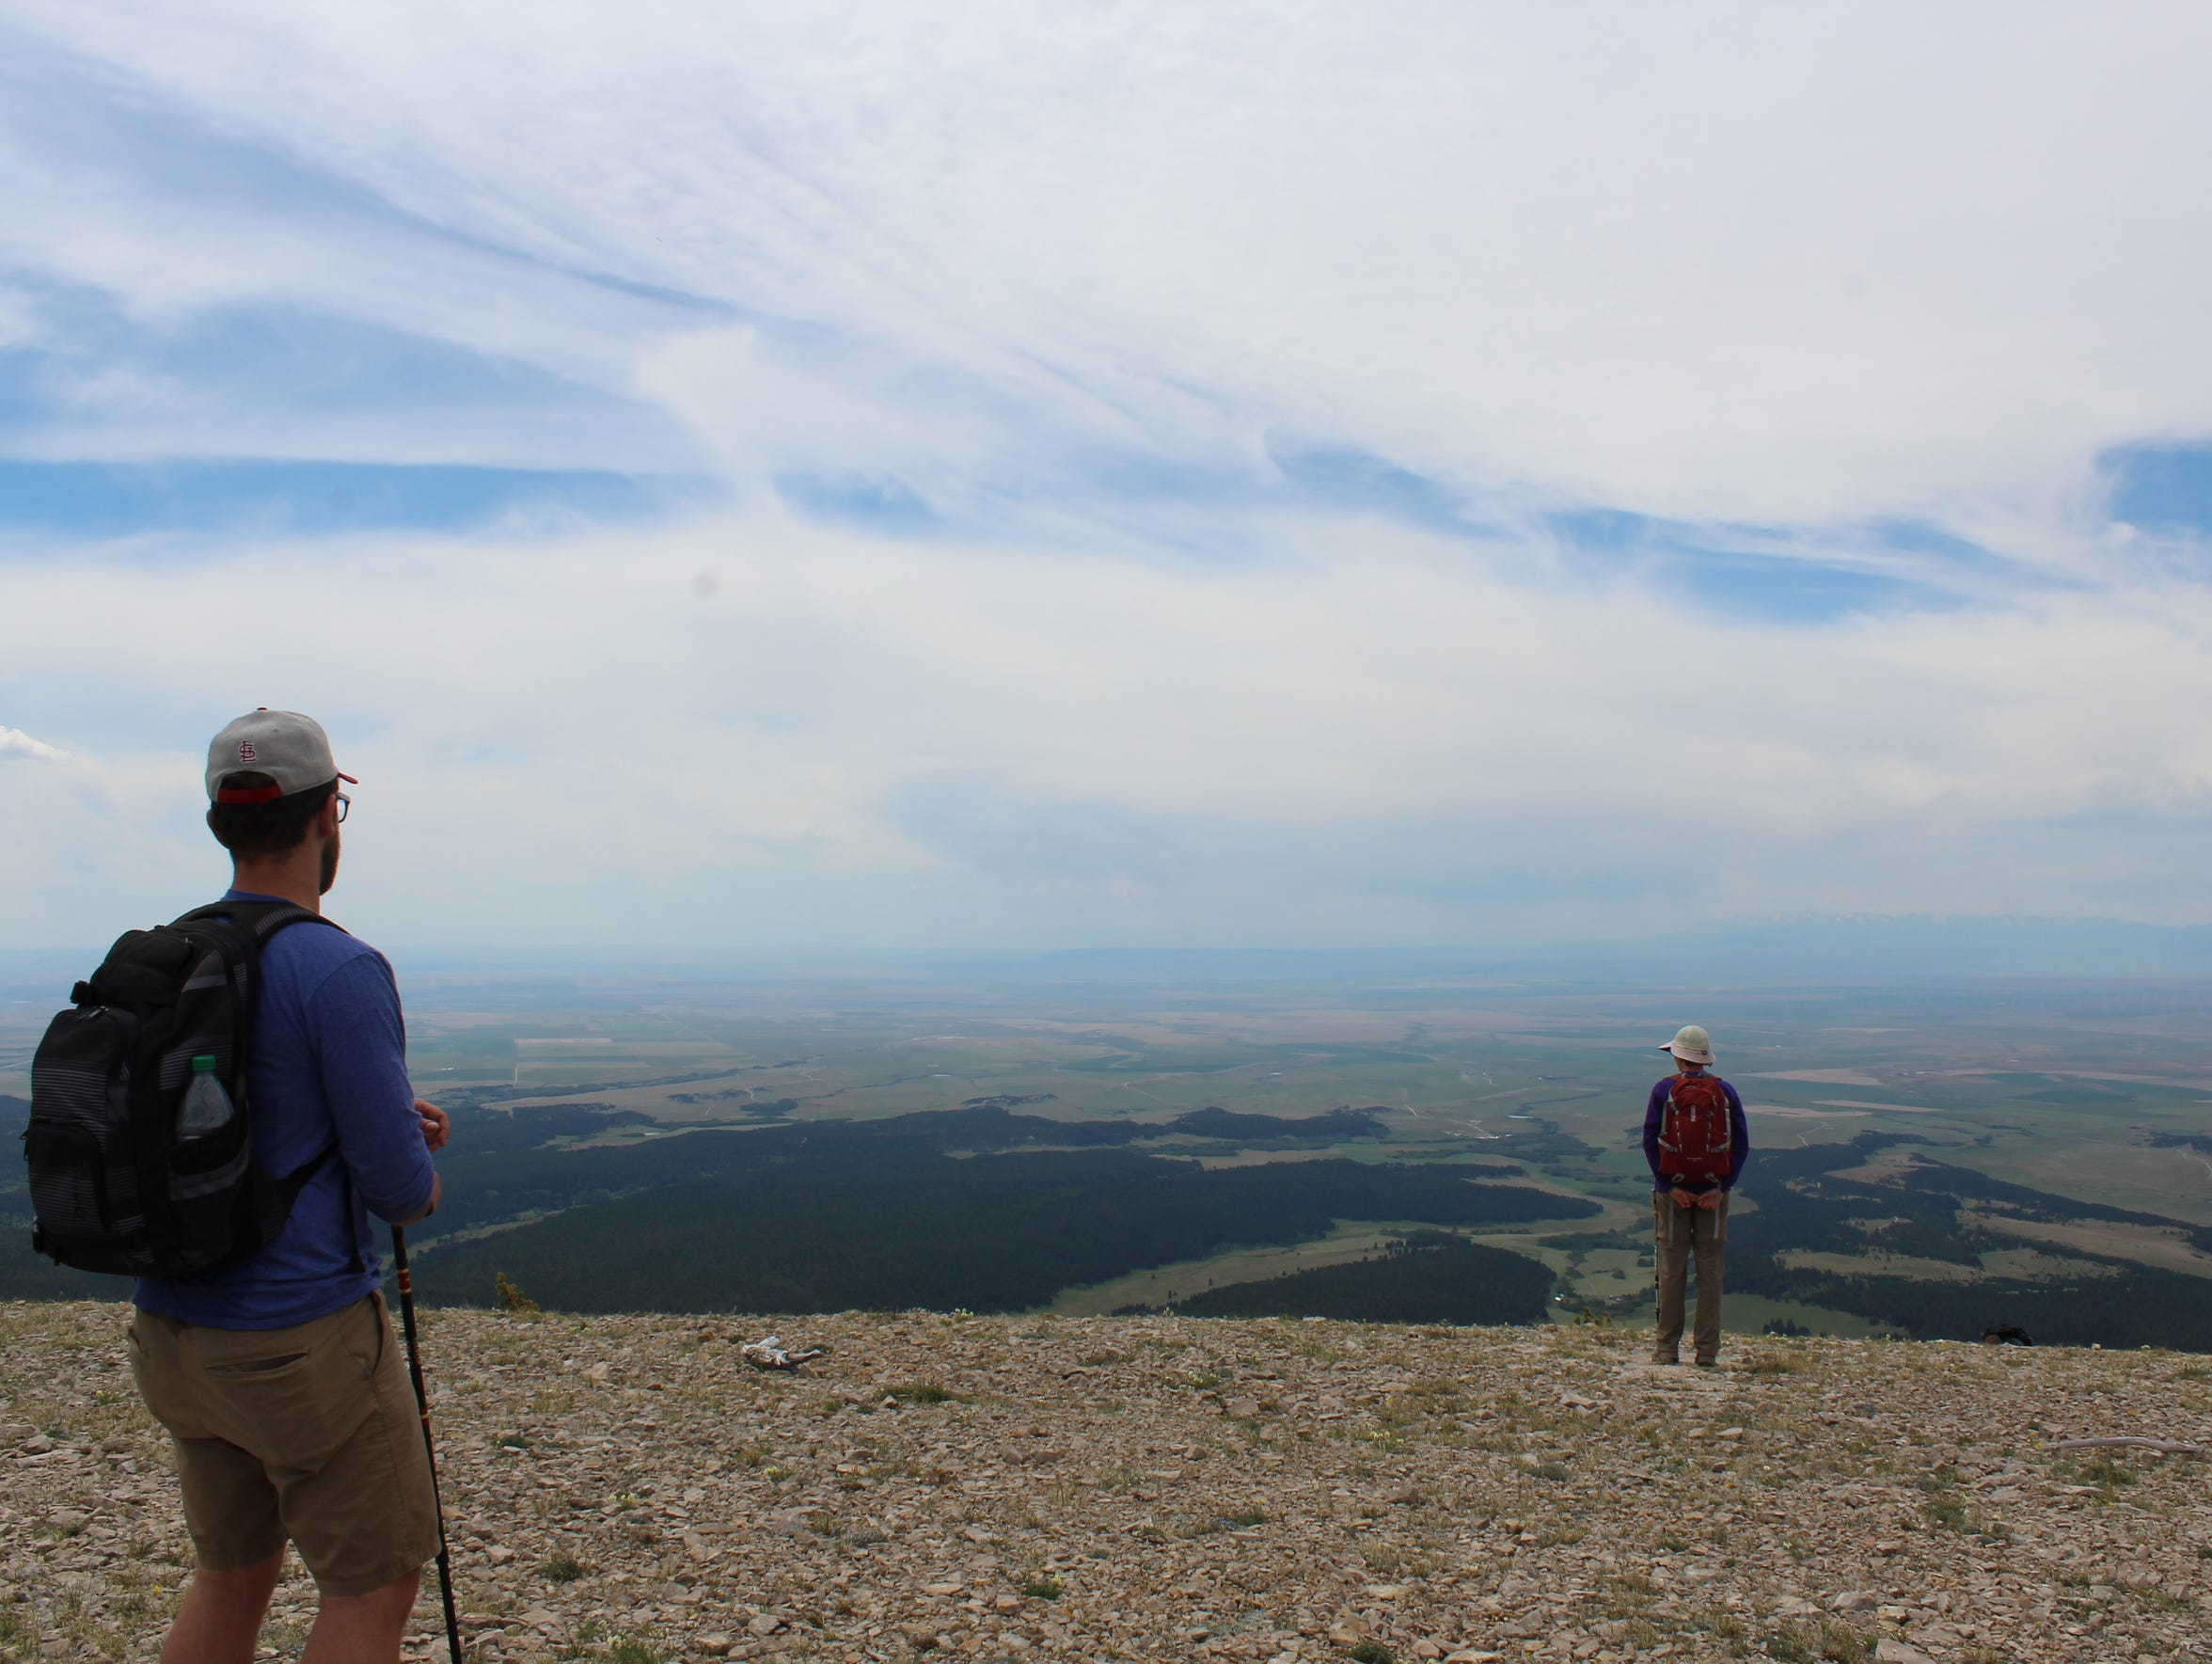 Hikers take in the views from the ridge of the Ice